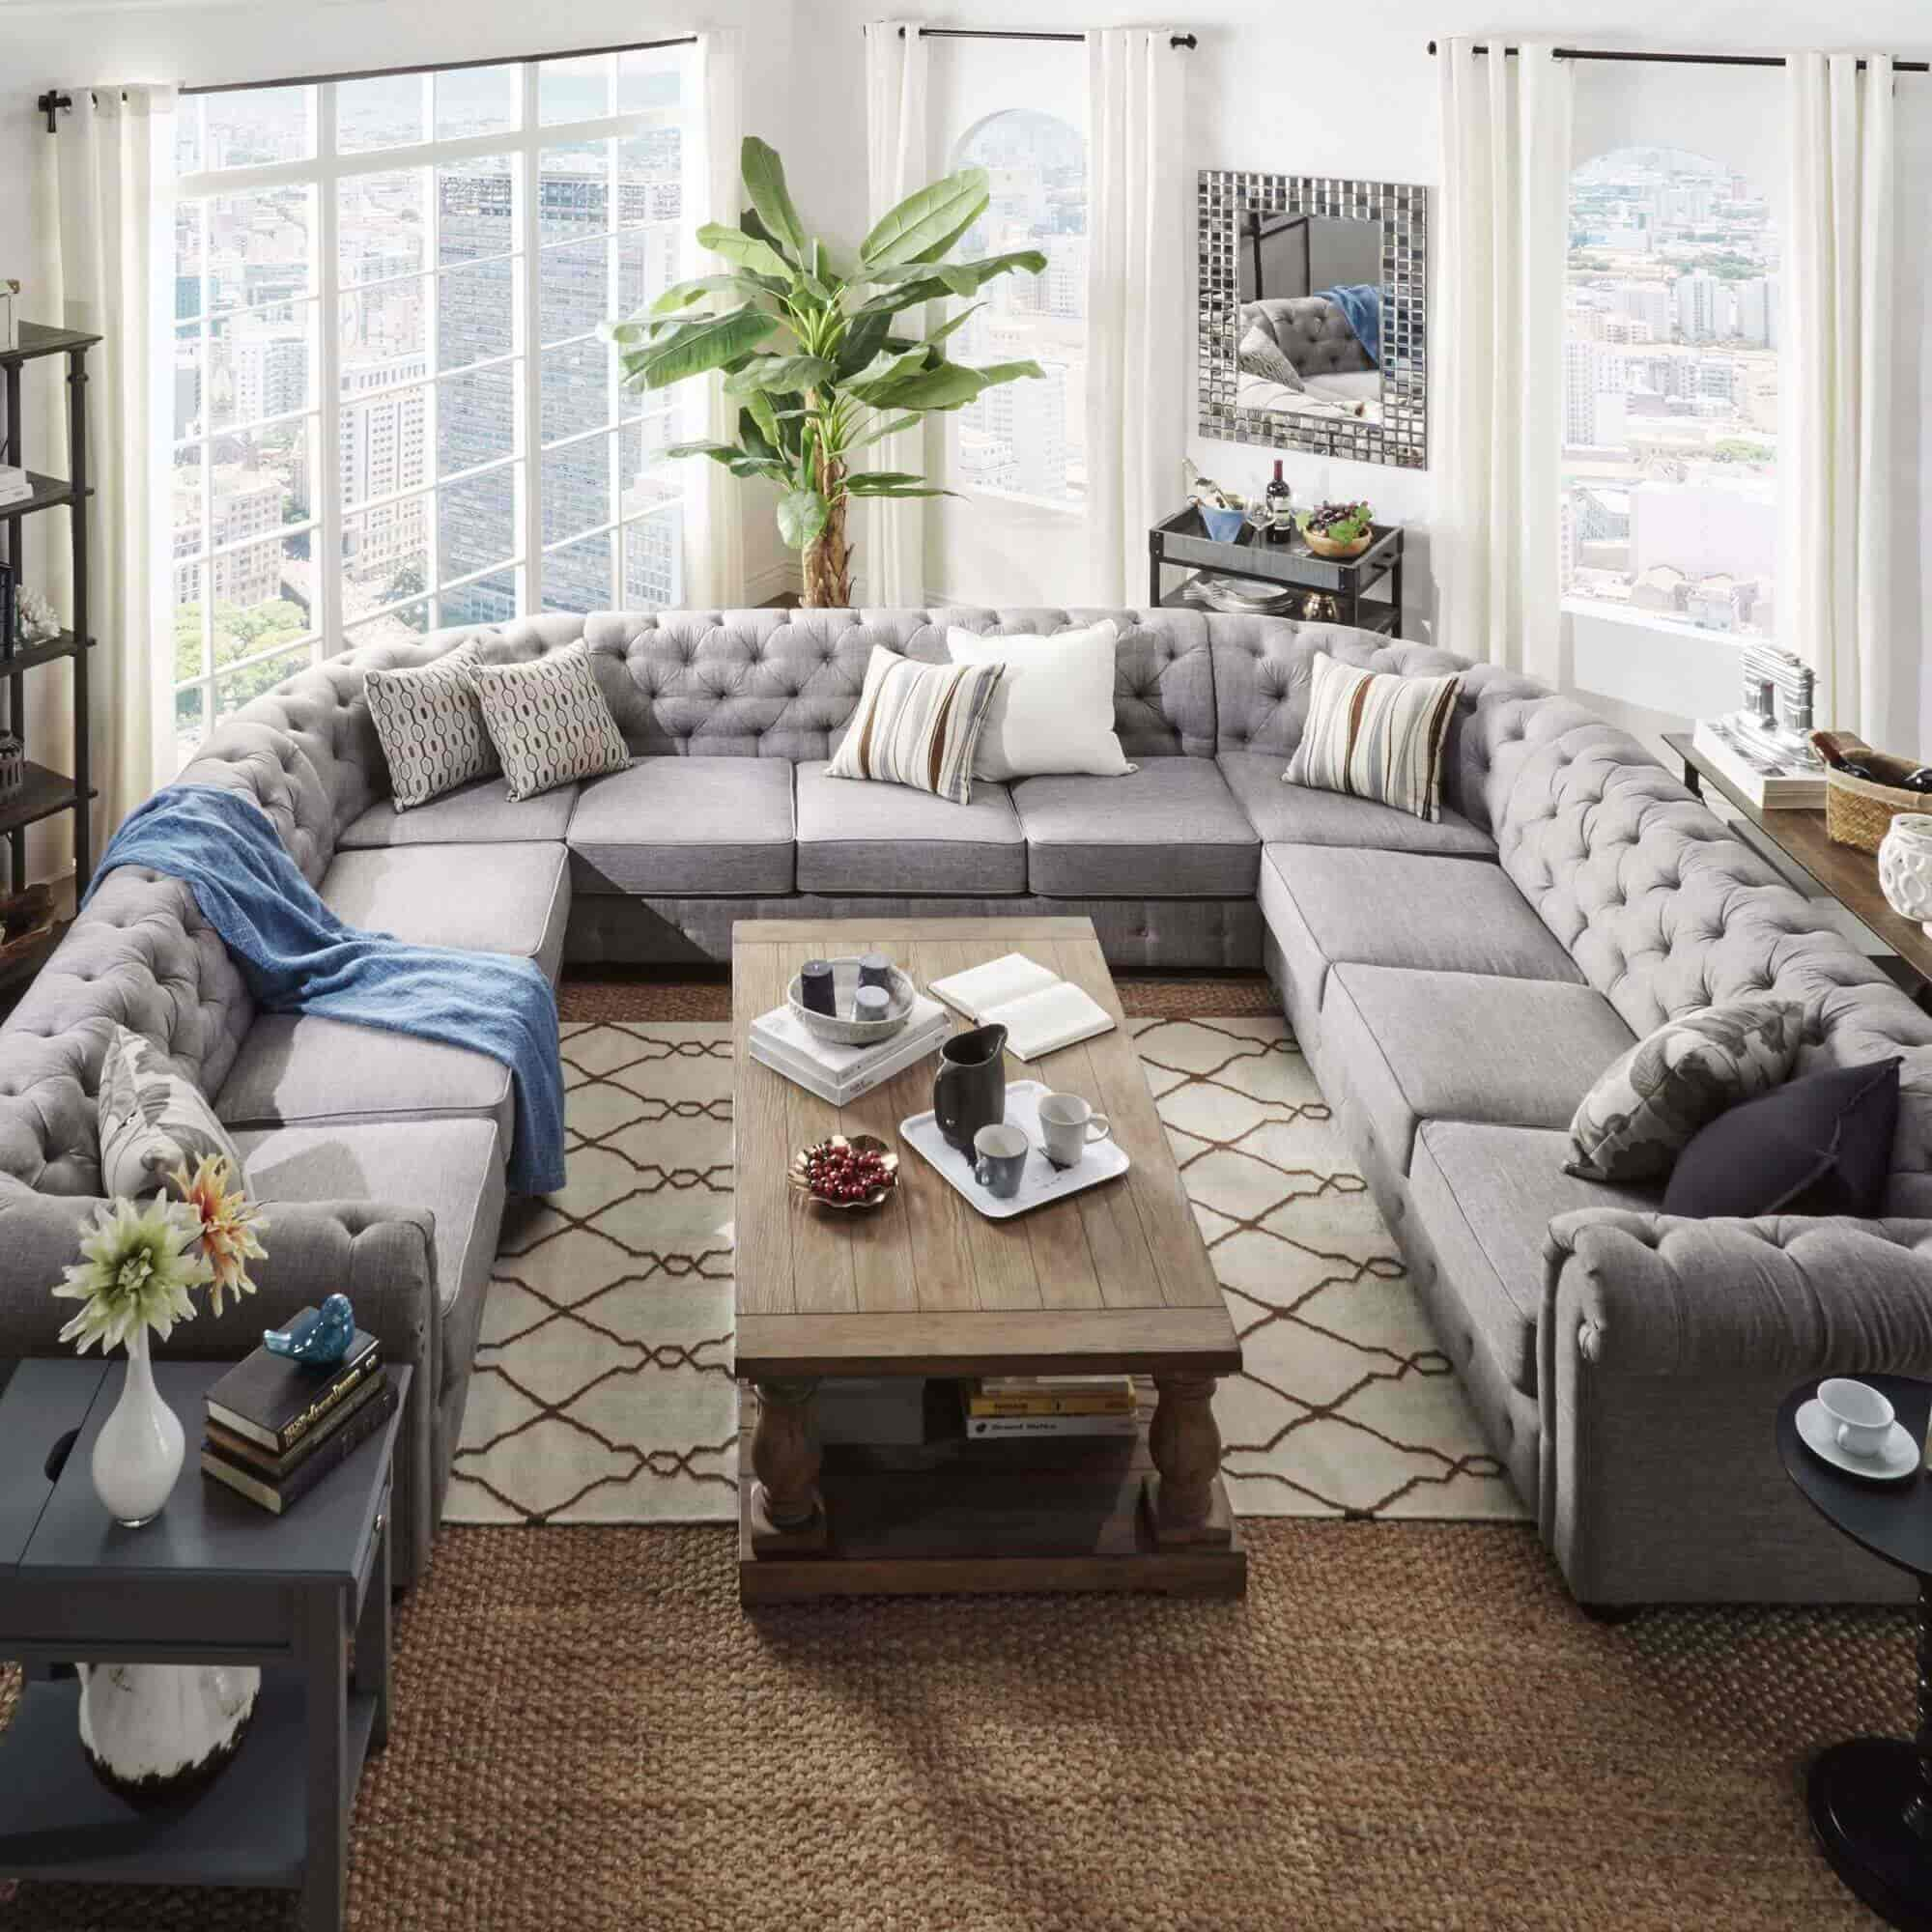 How To Pick The Best Coffee Table For Your Sectional Sofa The Architecture Designs